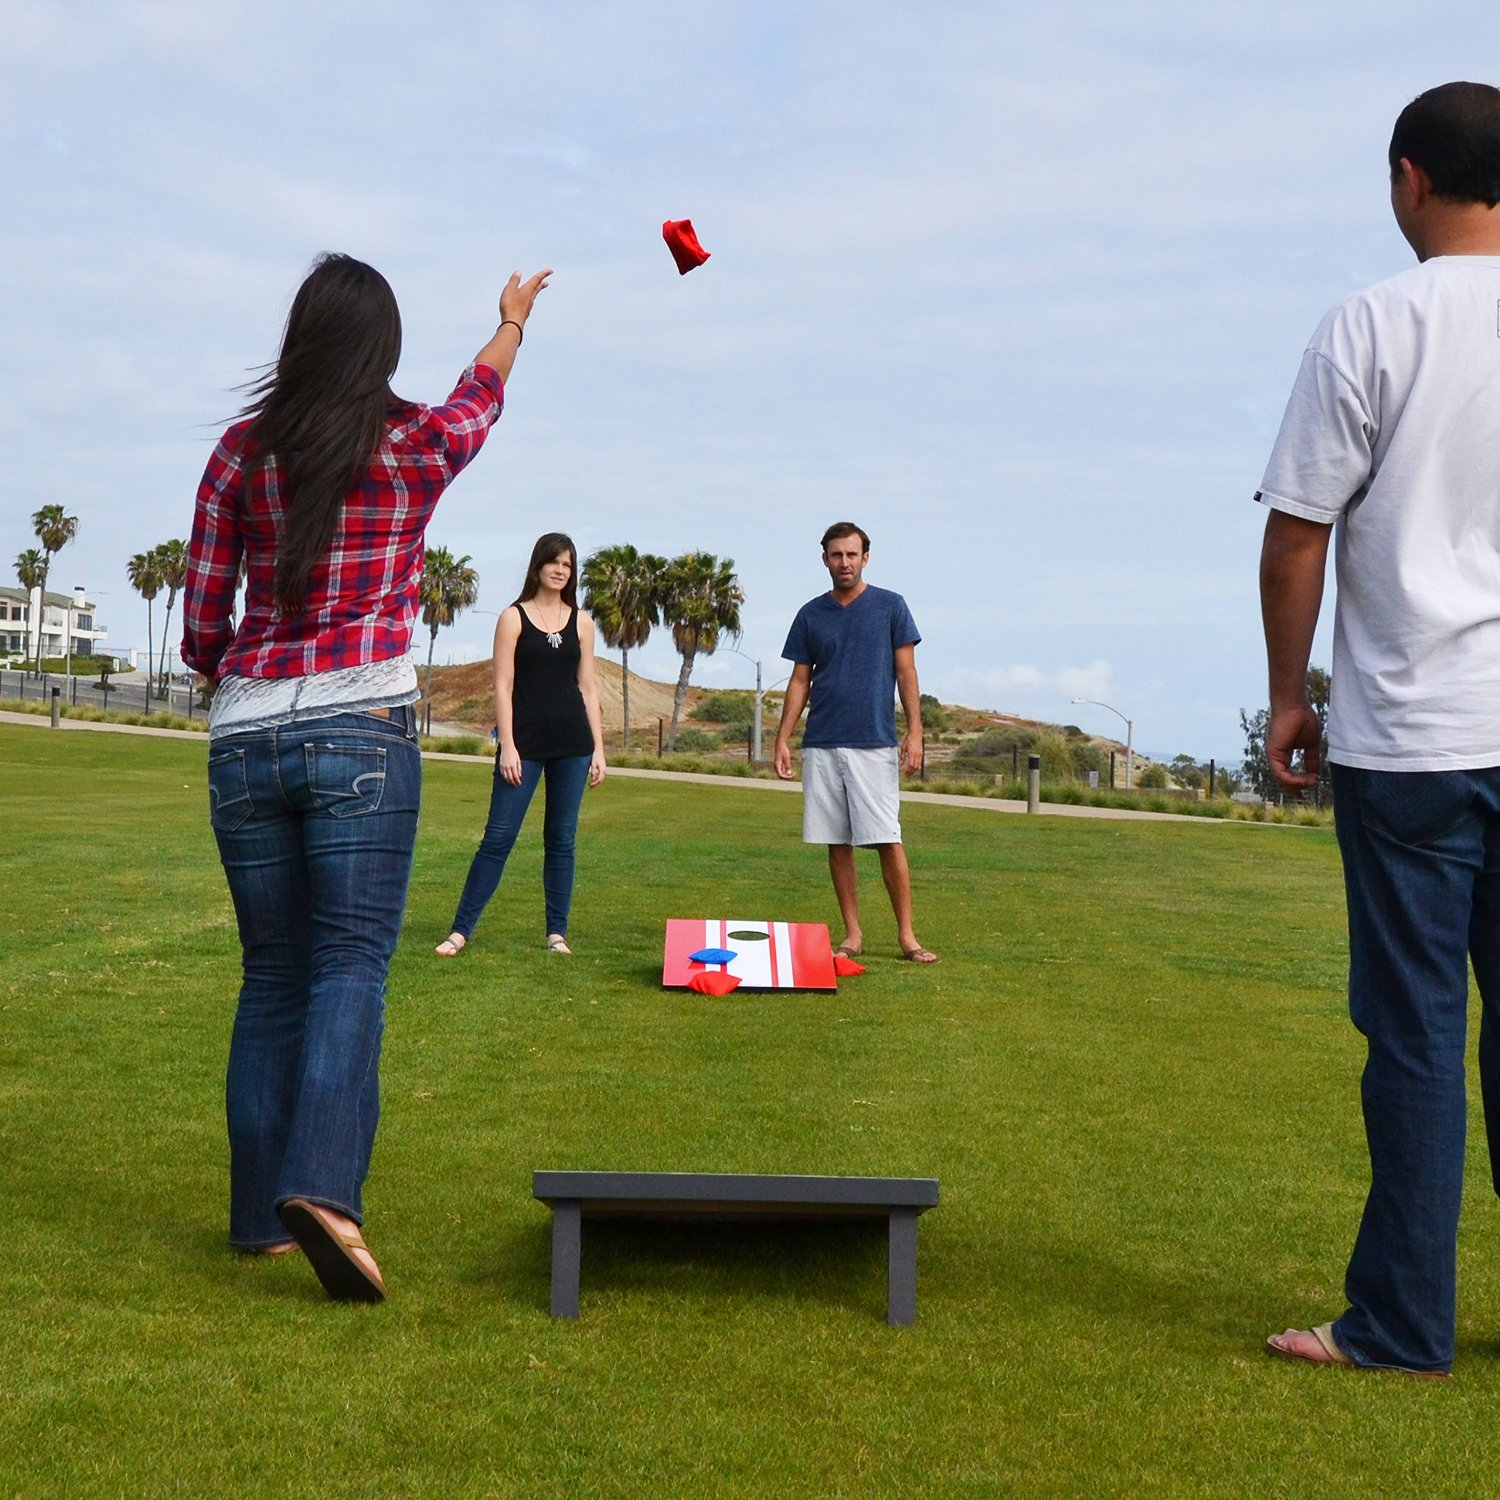 Corn Hole Game pic 2.jpg